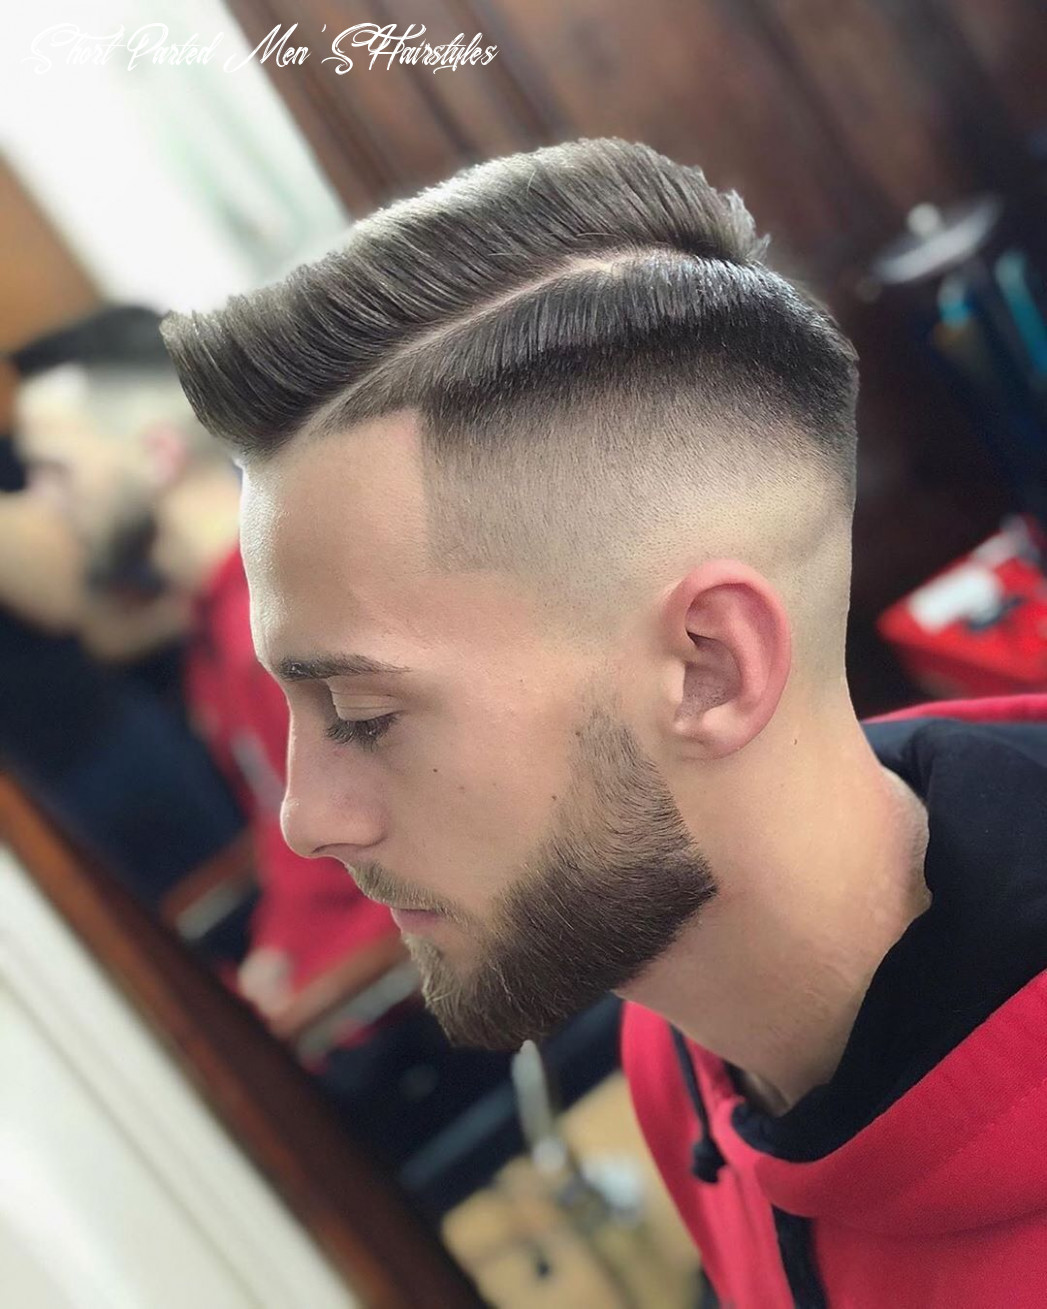 Hair @beautifinder in 10 | Haircuts for men, Side part mens ...